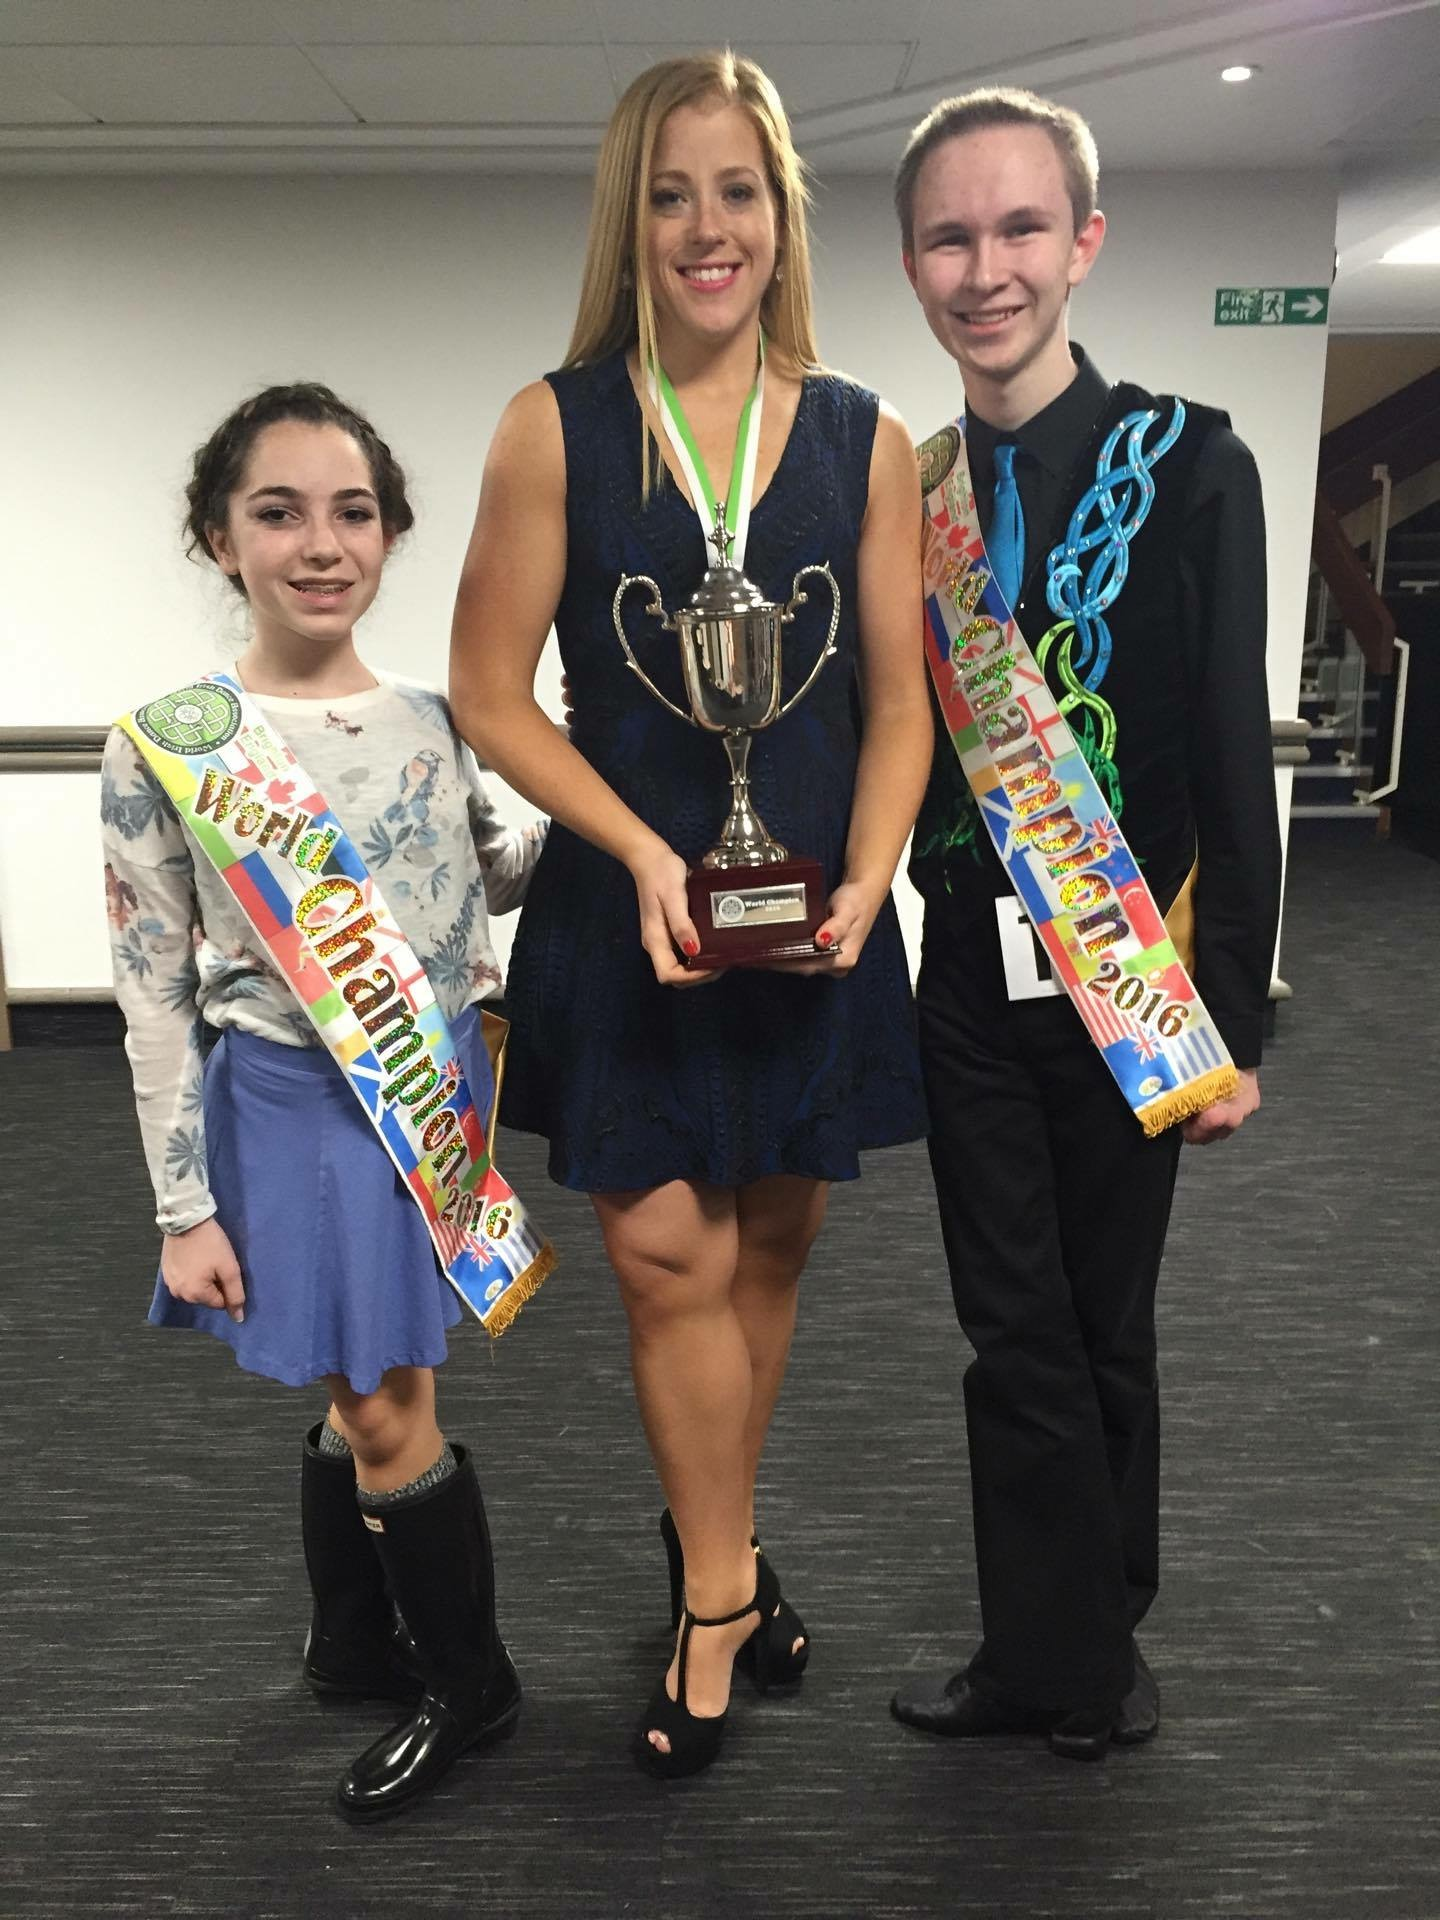 Angela Brunetti and Matthew Jones pose with their teacher, Kate O'Brien, after both winning the 2016 WIDA World Championships